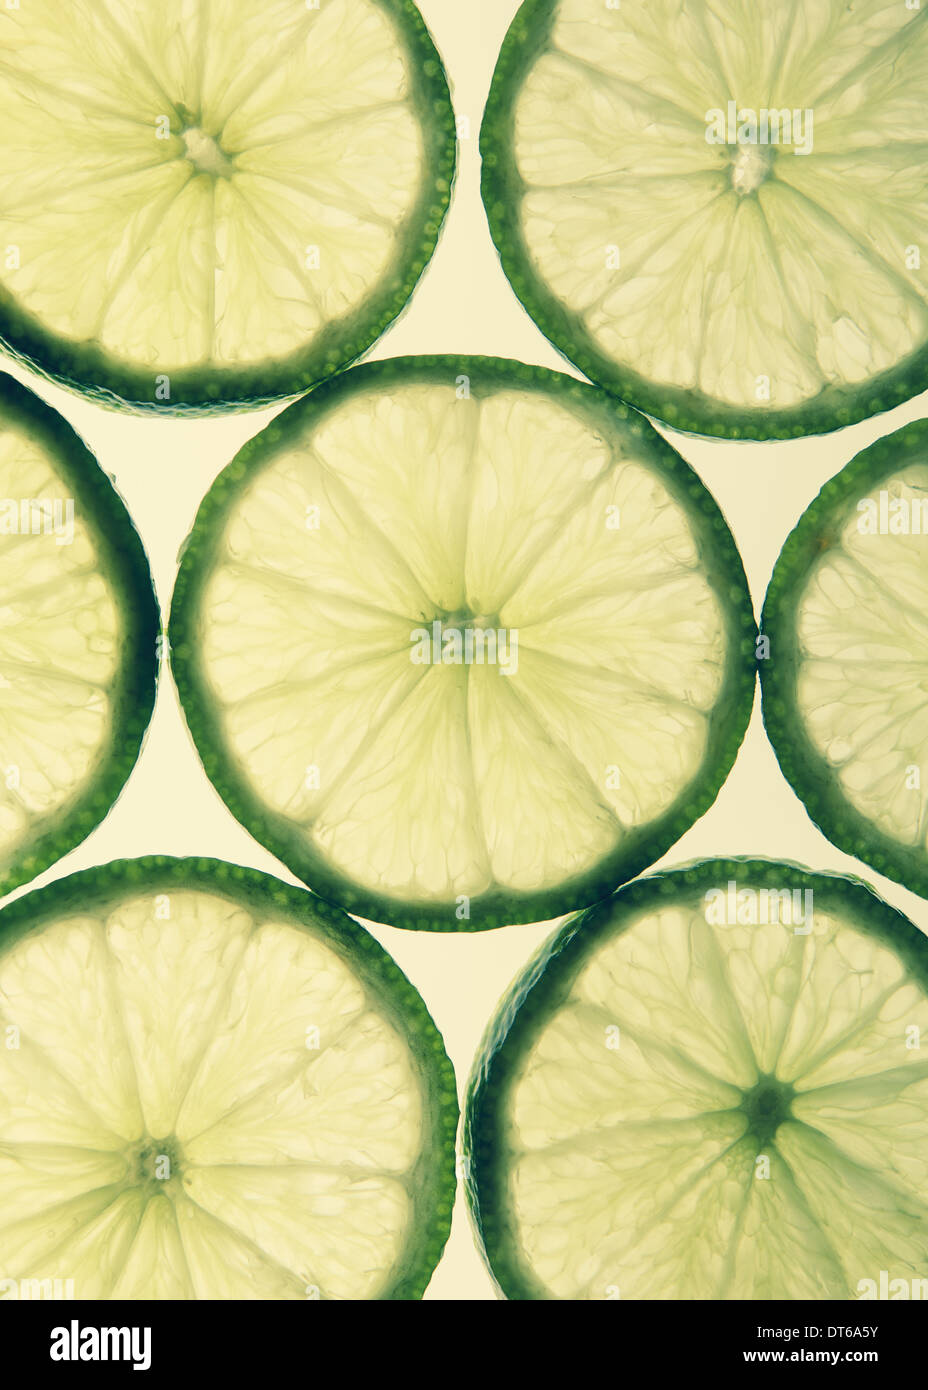 Tranches de lime organique sur fond blanc Photo Stock